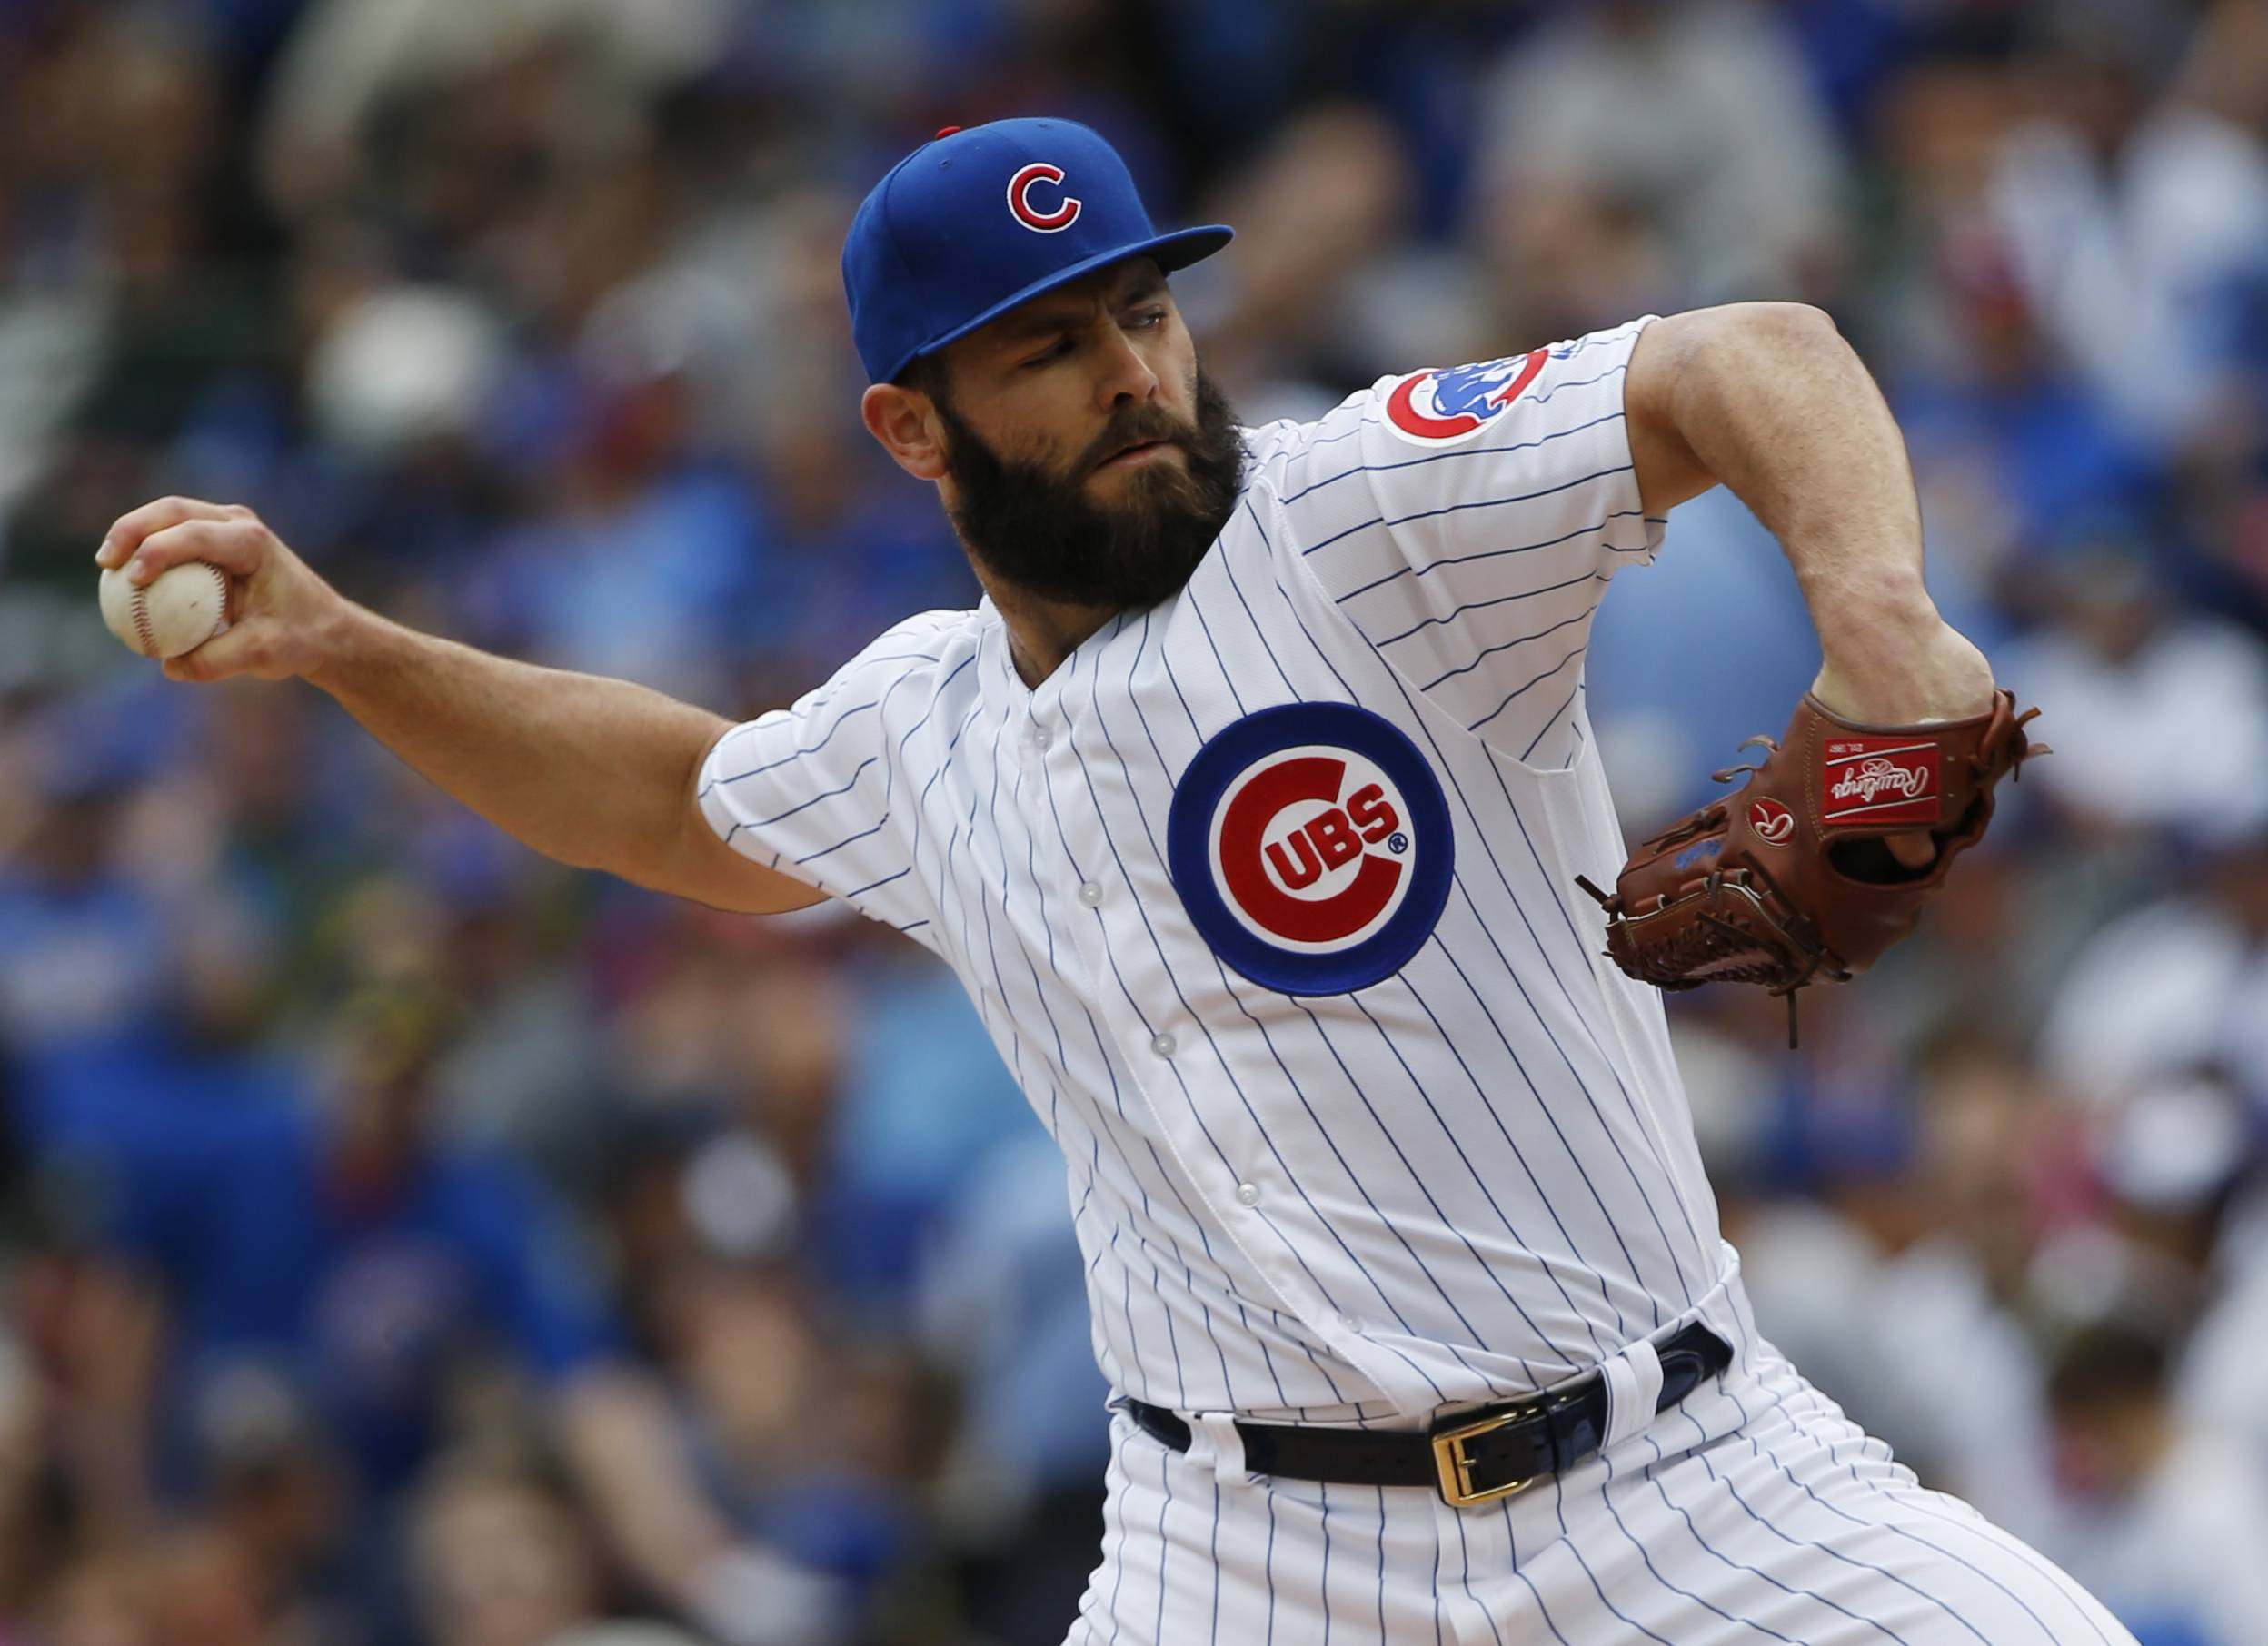 Chicago Cubs starting pitcher Jake Arrieta throws against the Milwaukee Brewers in the first inning of a baseball game in Chicago, Sunday, May 21, 2017. He got an extra day of rest because Saturday's game was postponed by the Cubs, a decision questioned by the Brewers. (AP Photo/Nam Y. Huh)